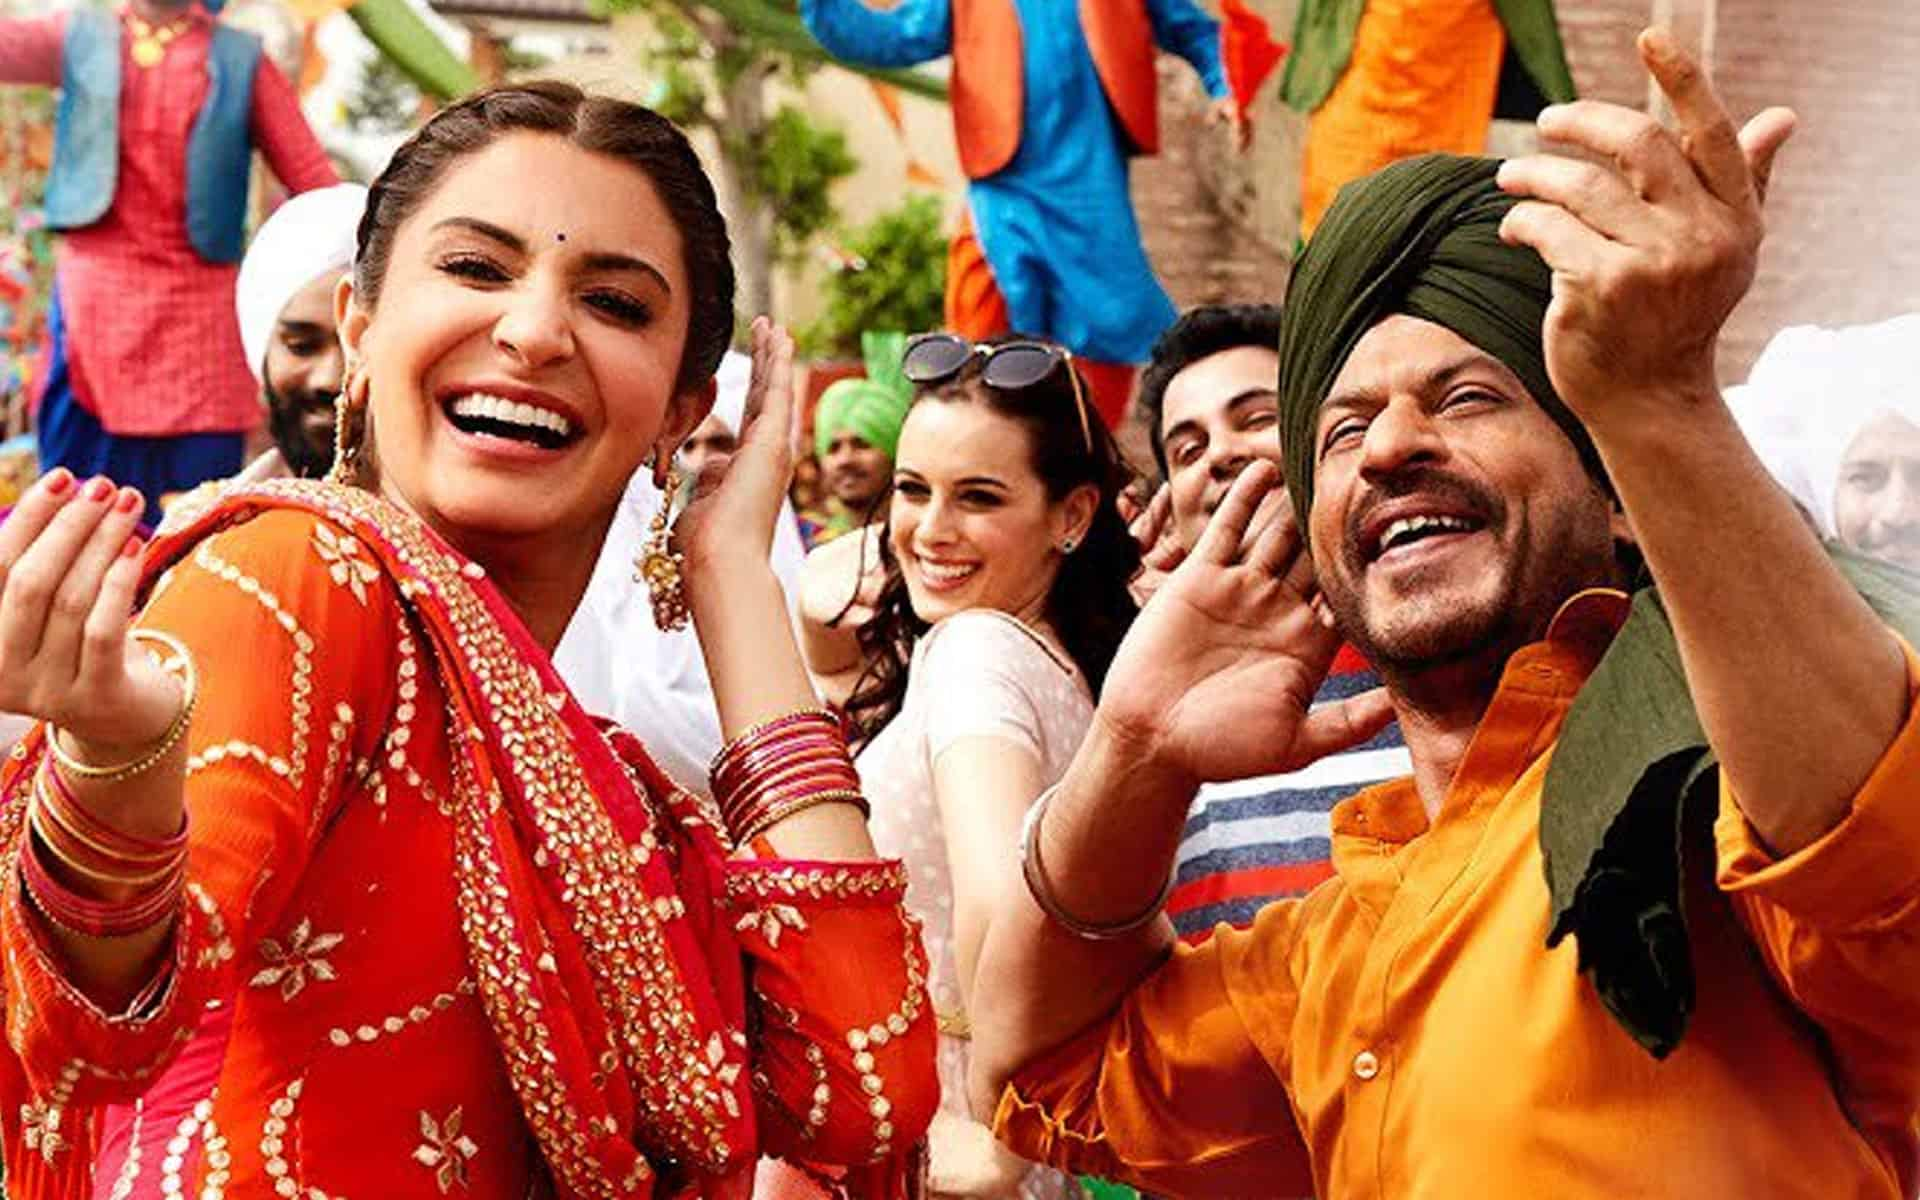 butterfly song download pagalworld mobi